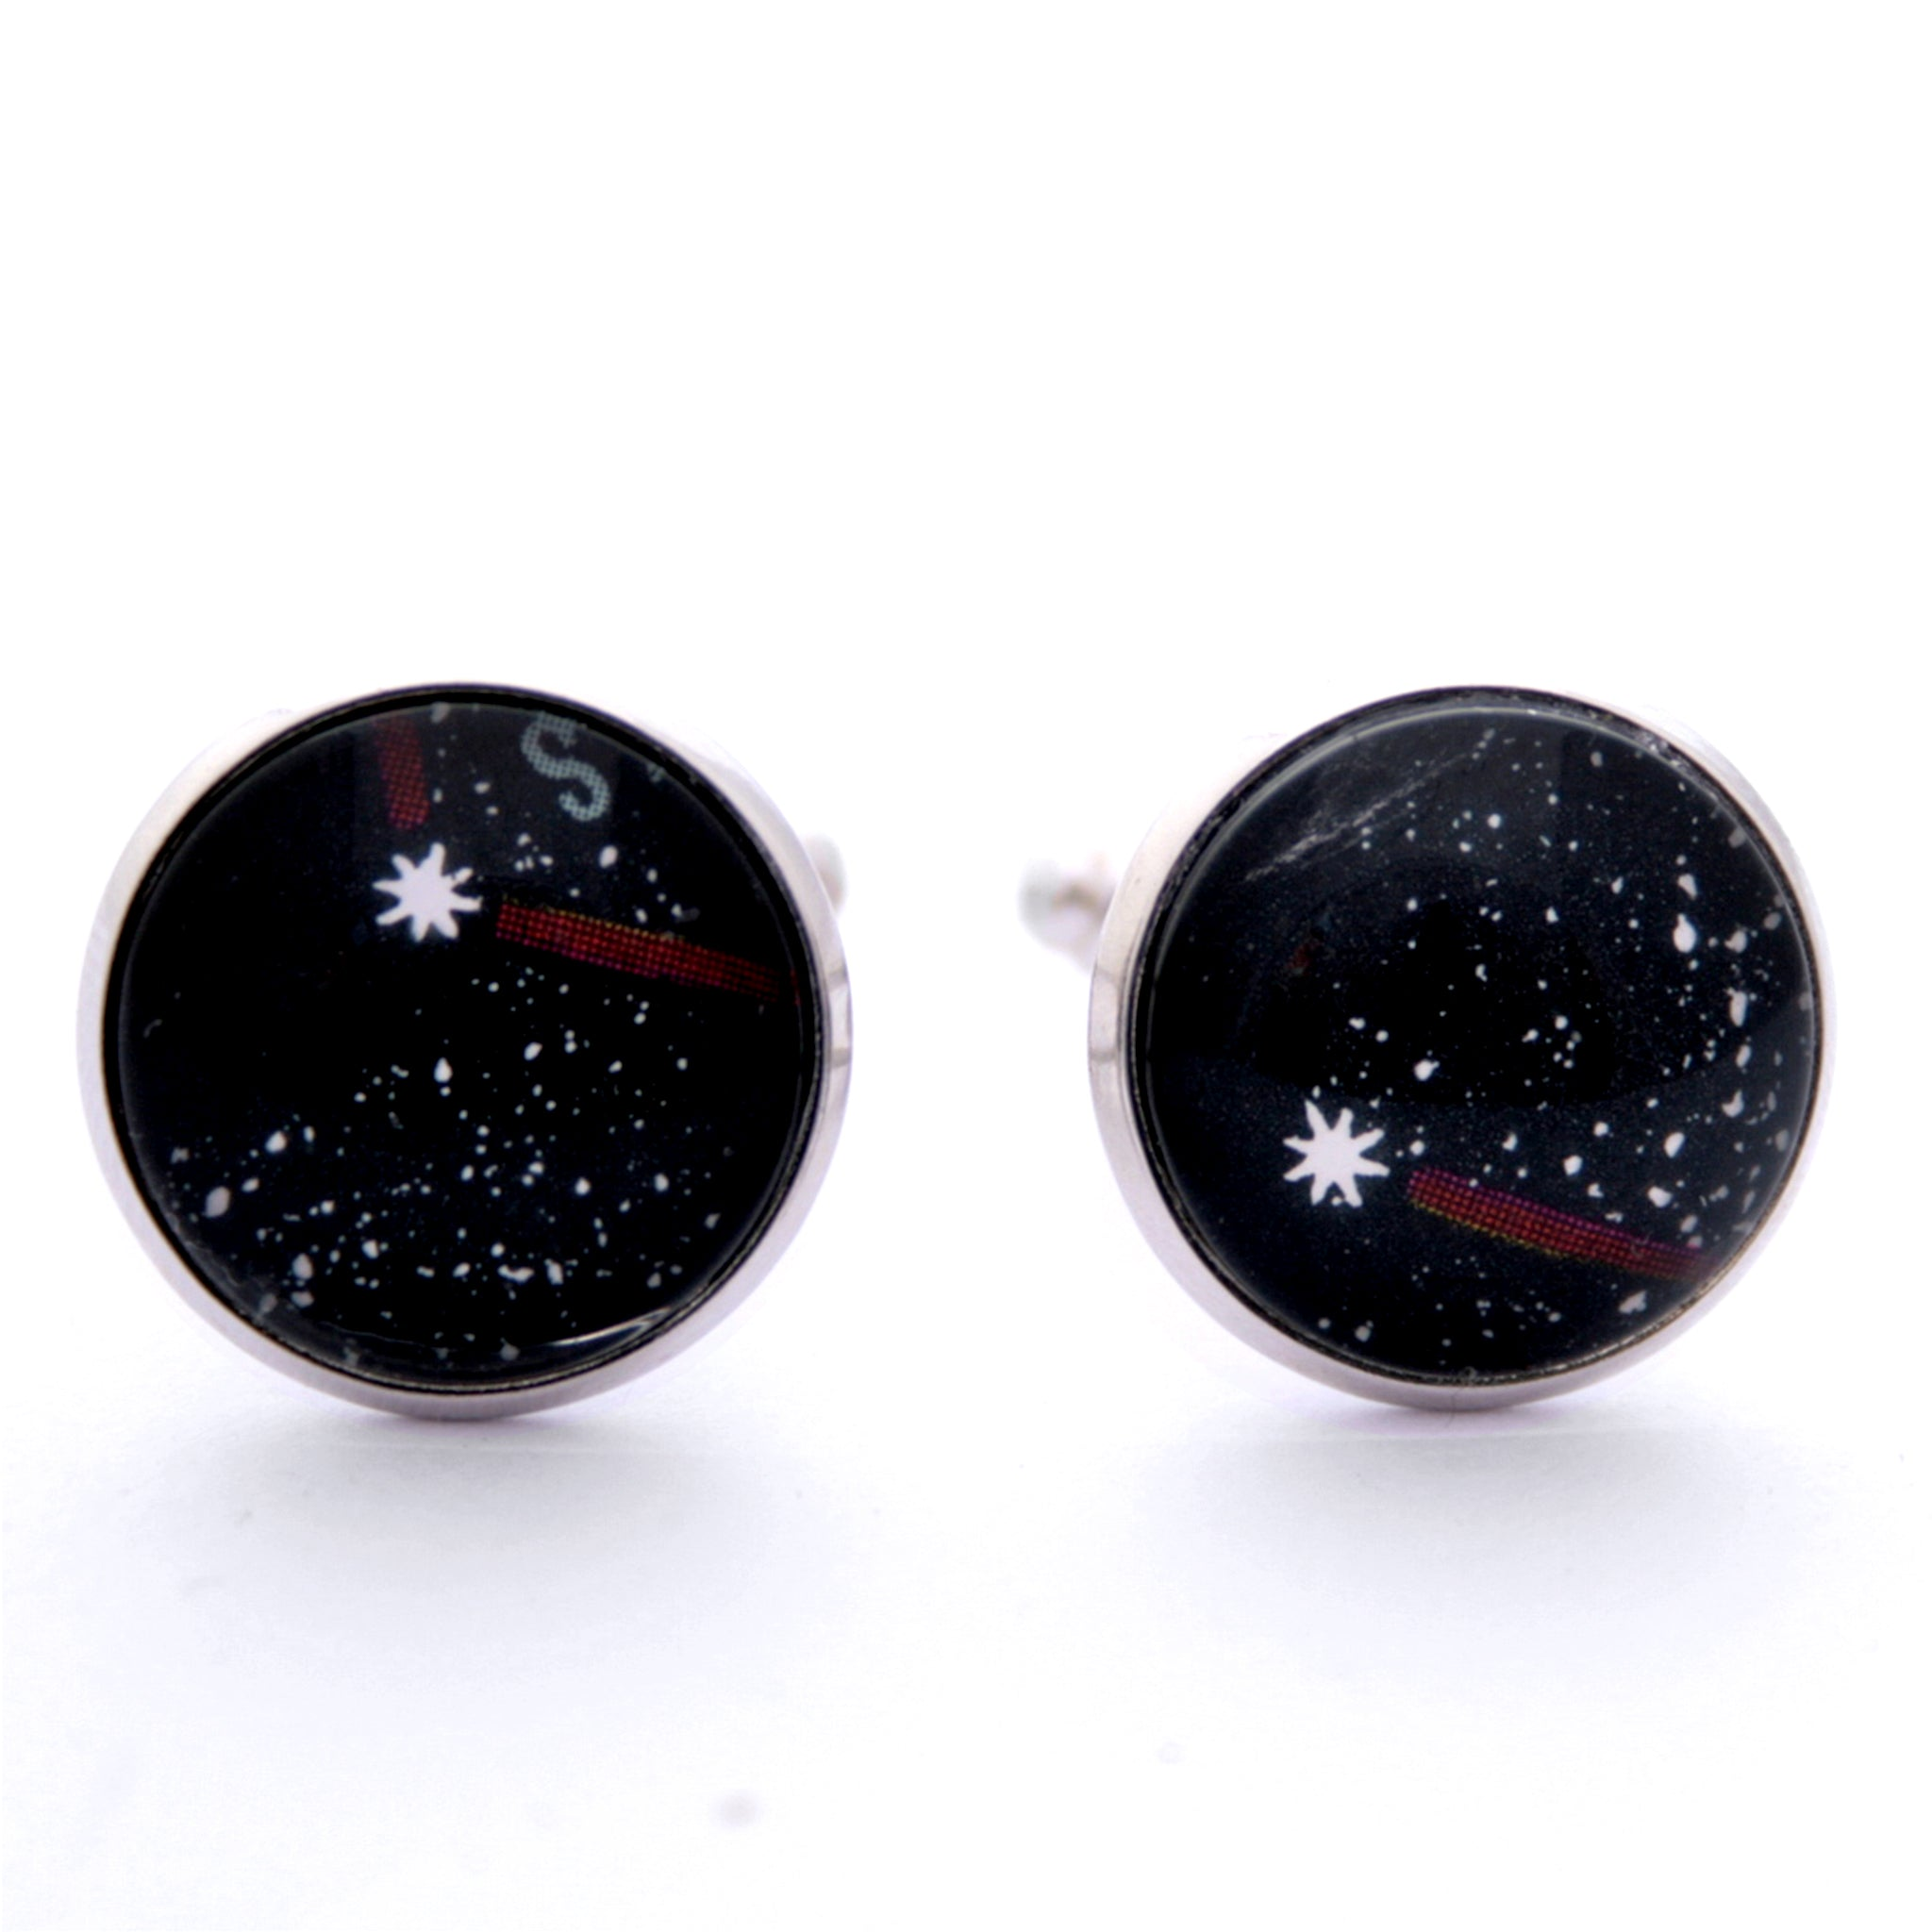 Black cufflinks on silver blanks featuring stars